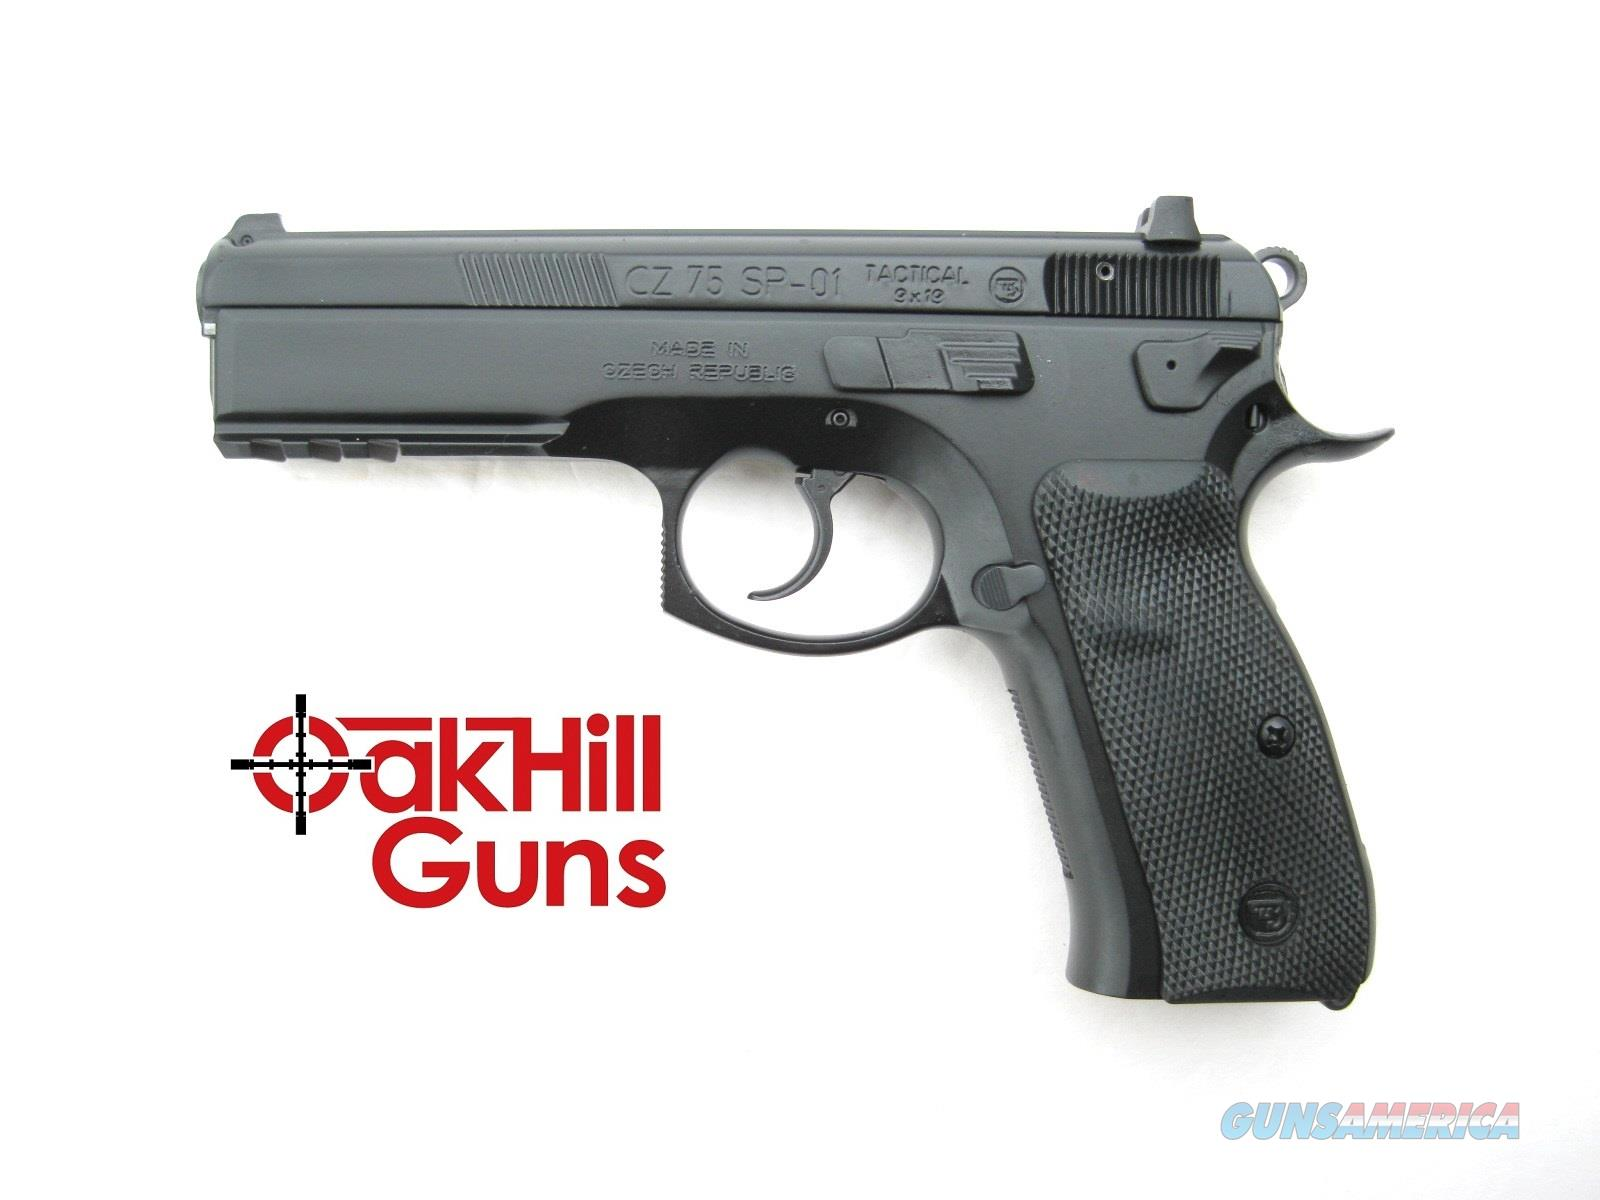 CZ 75 SP-01 9mm Tactical Night Sights Decocker 10 Round Mags 01153 *NEW*  Guns > Pistols > CZ Pistols